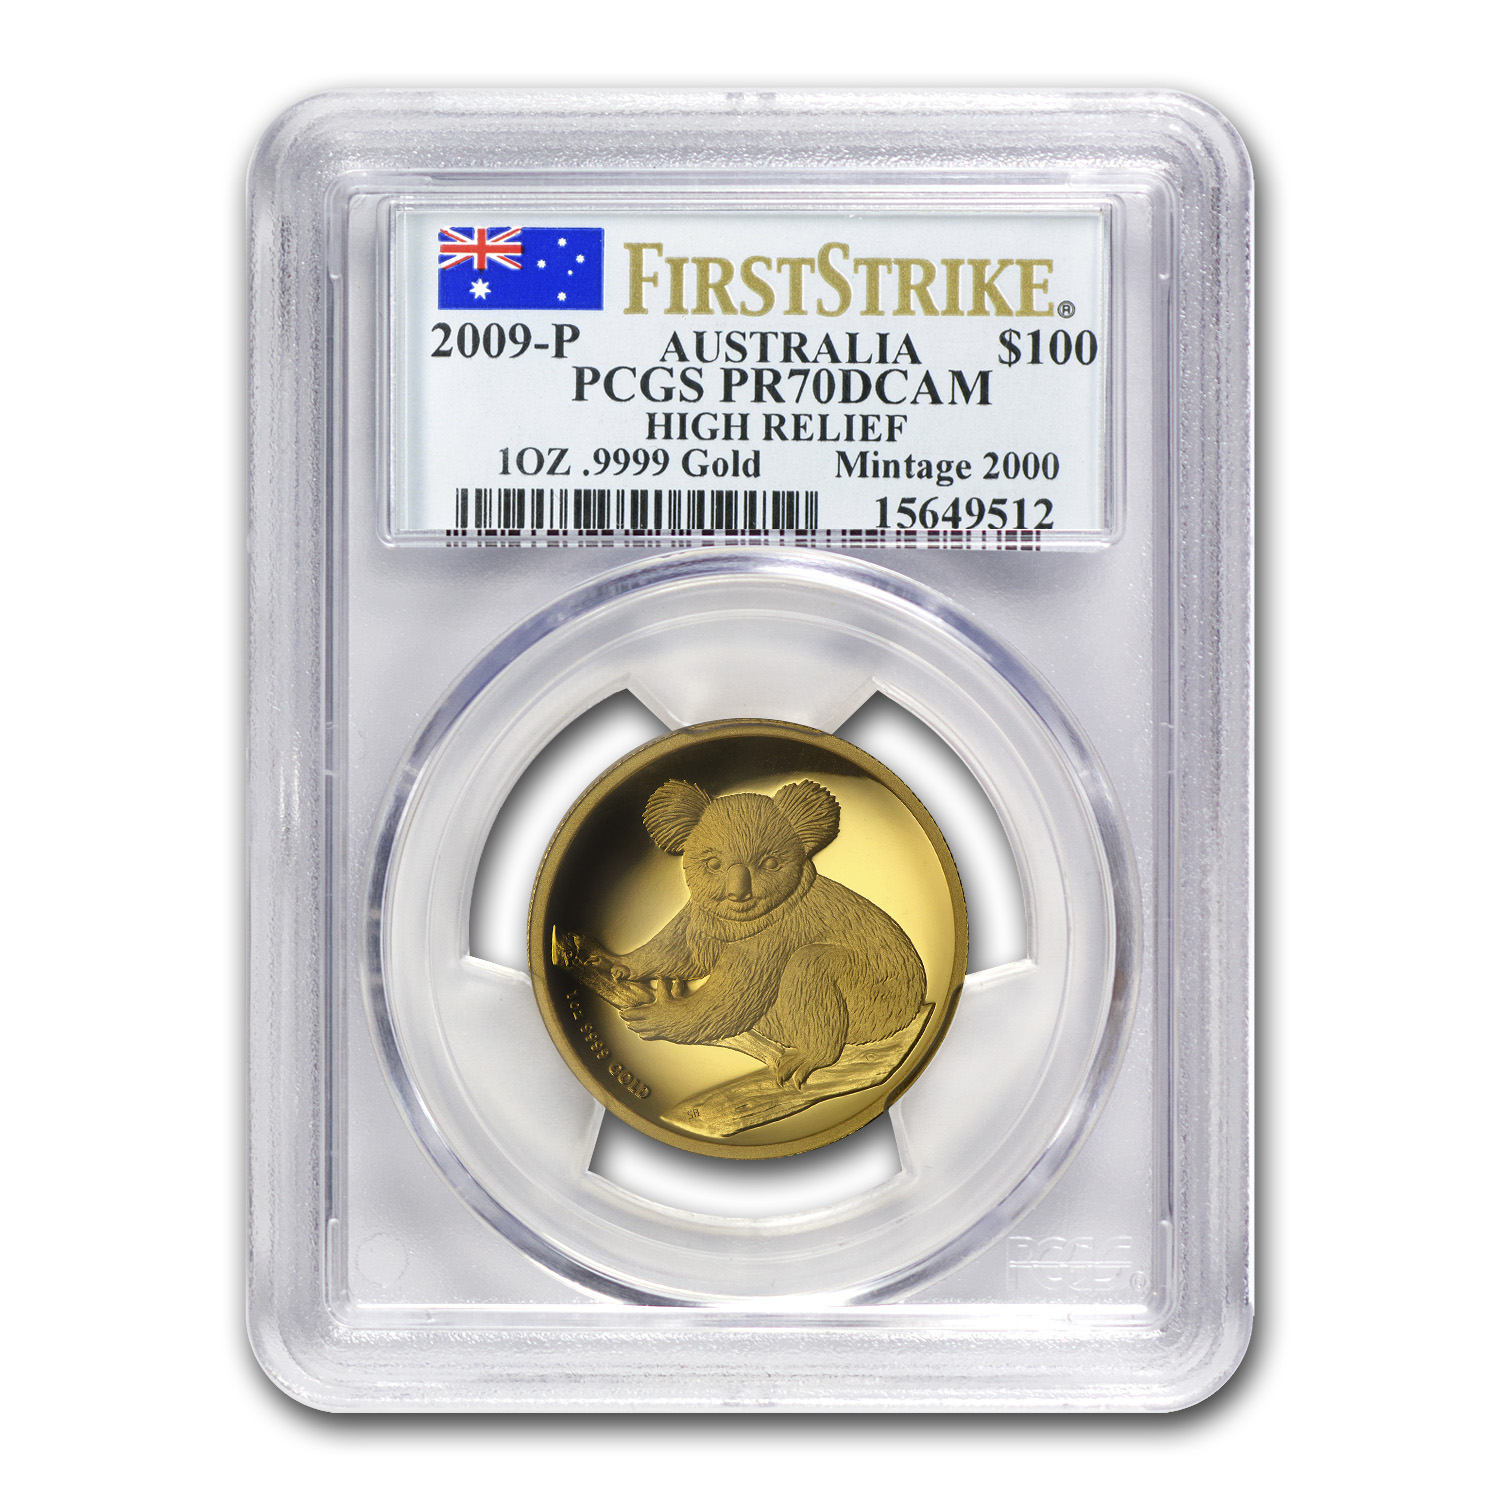 2009-P 1 oz Australian Gold Koala PR-70 PCGS (FS, High Relief)